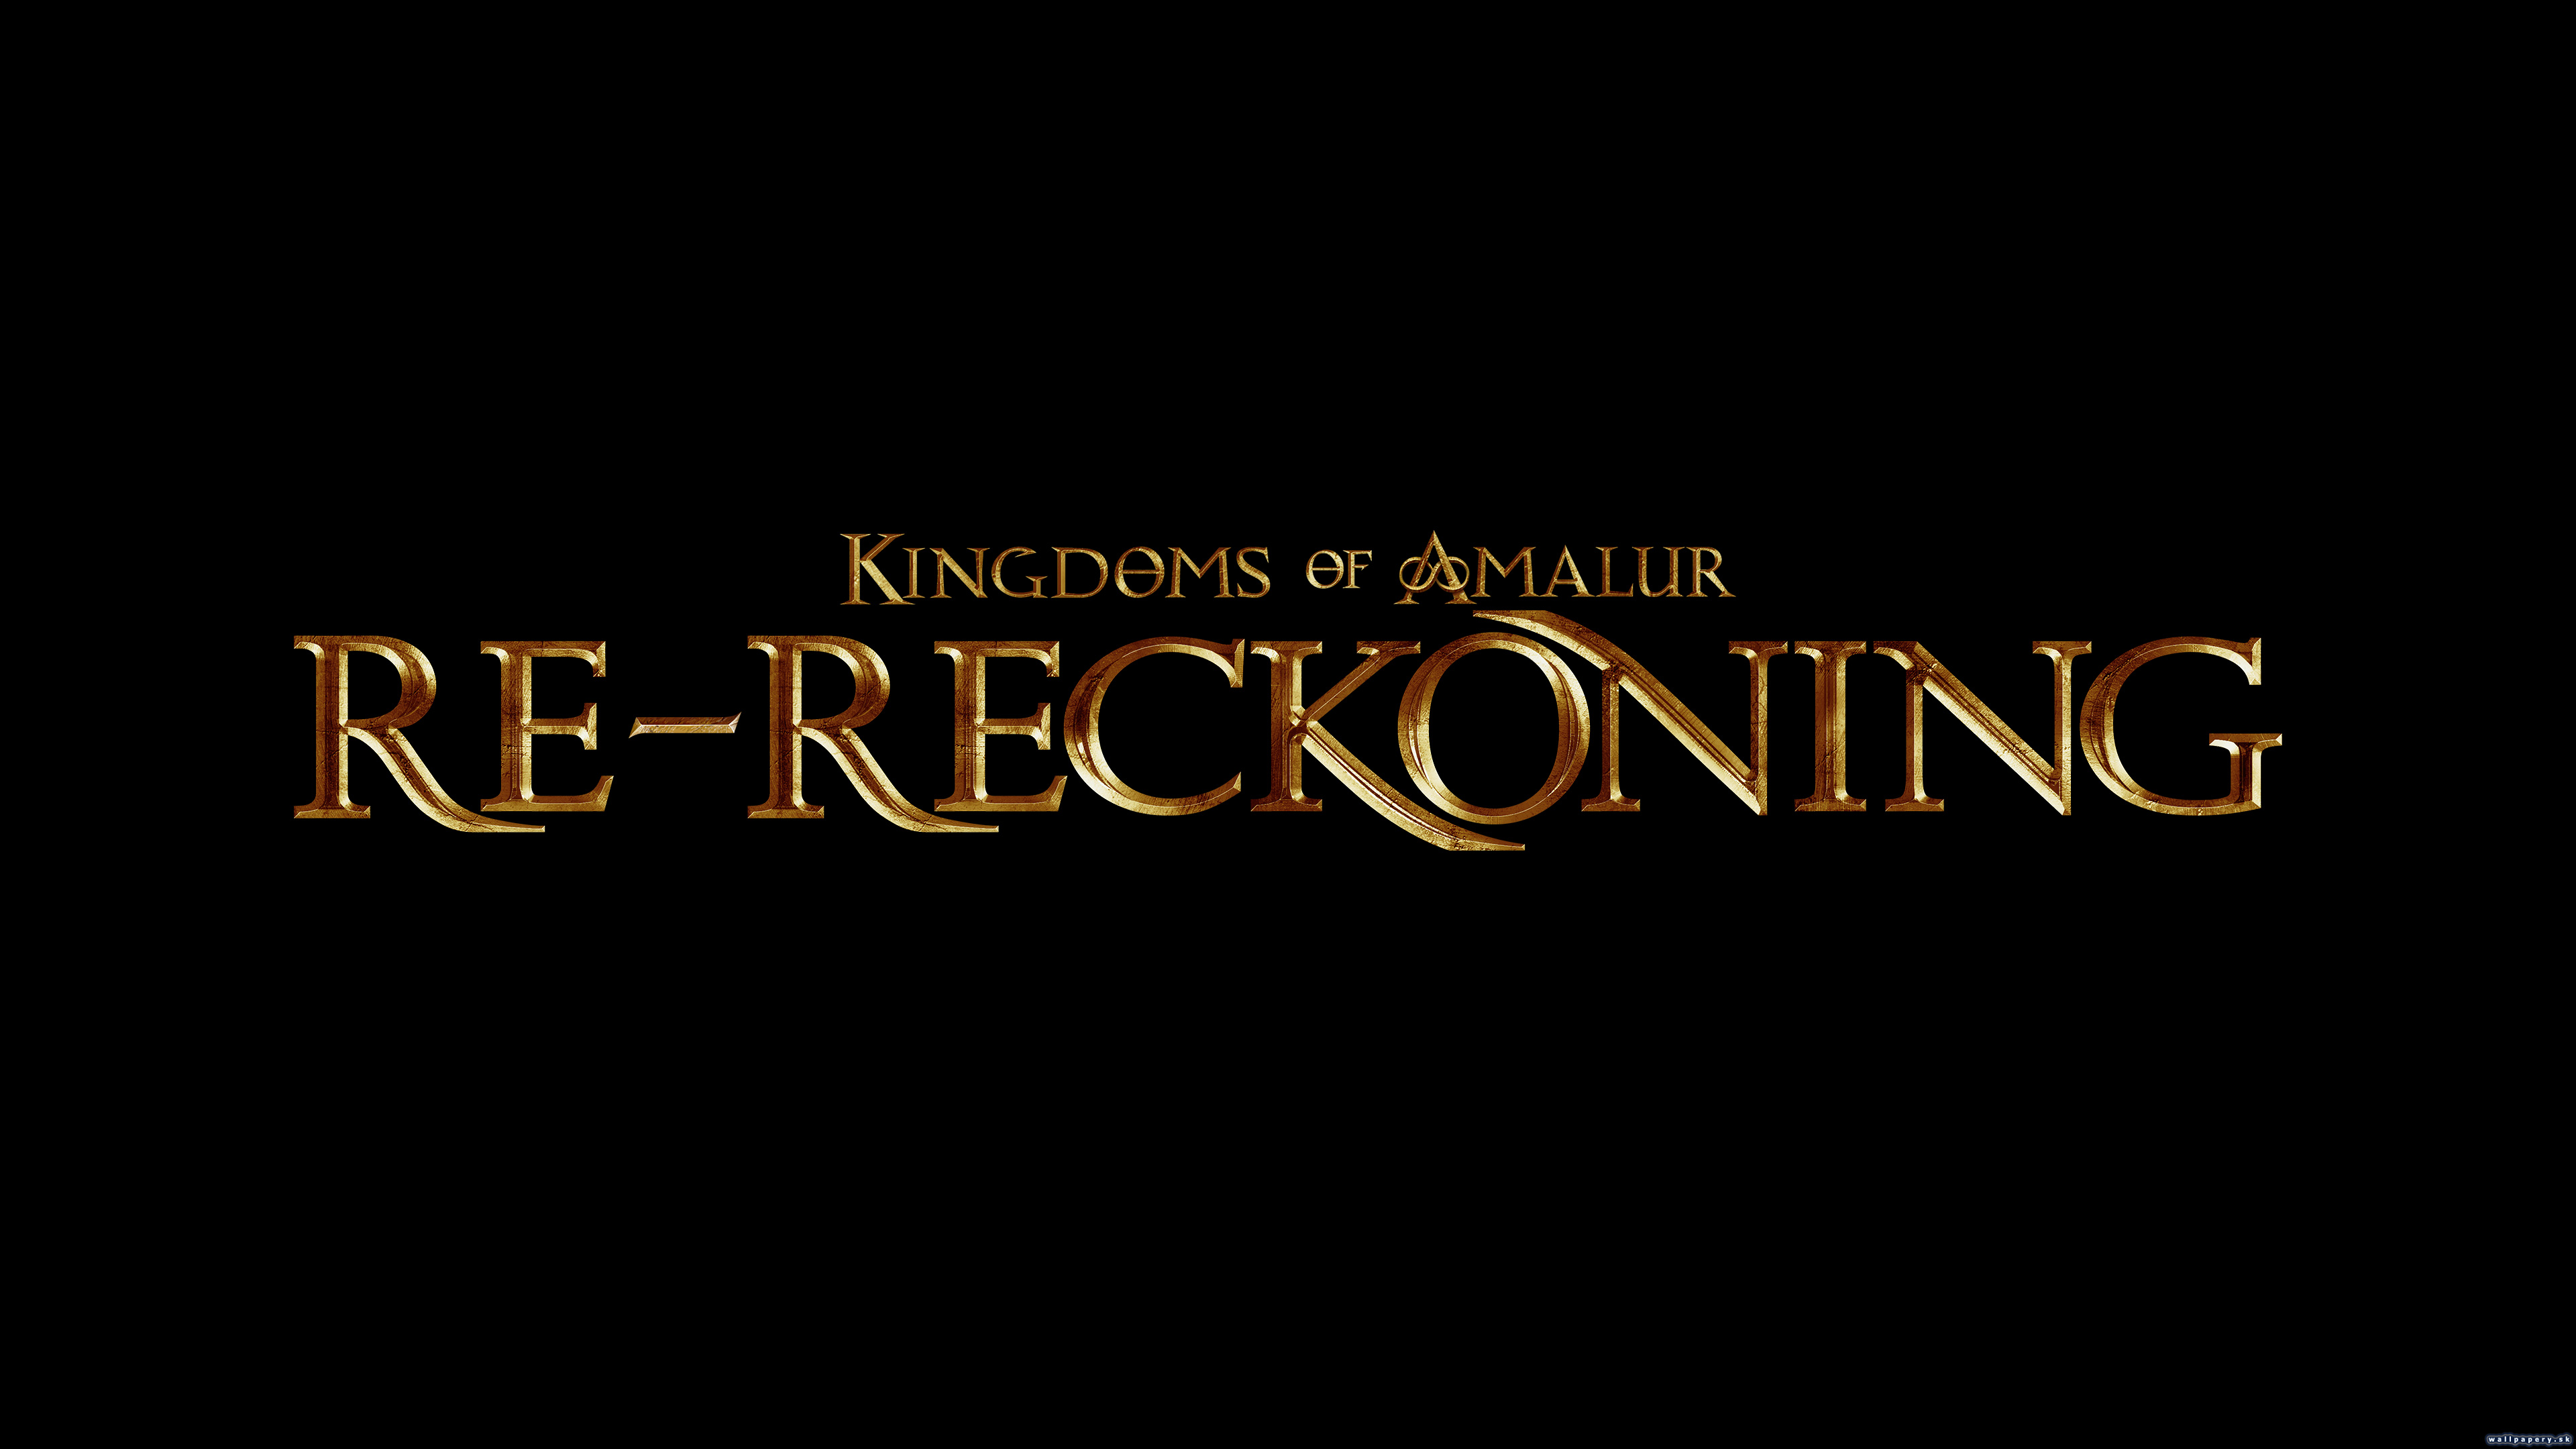 Kingdoms of Amalur: Re-Reckoning - wallpaper 2